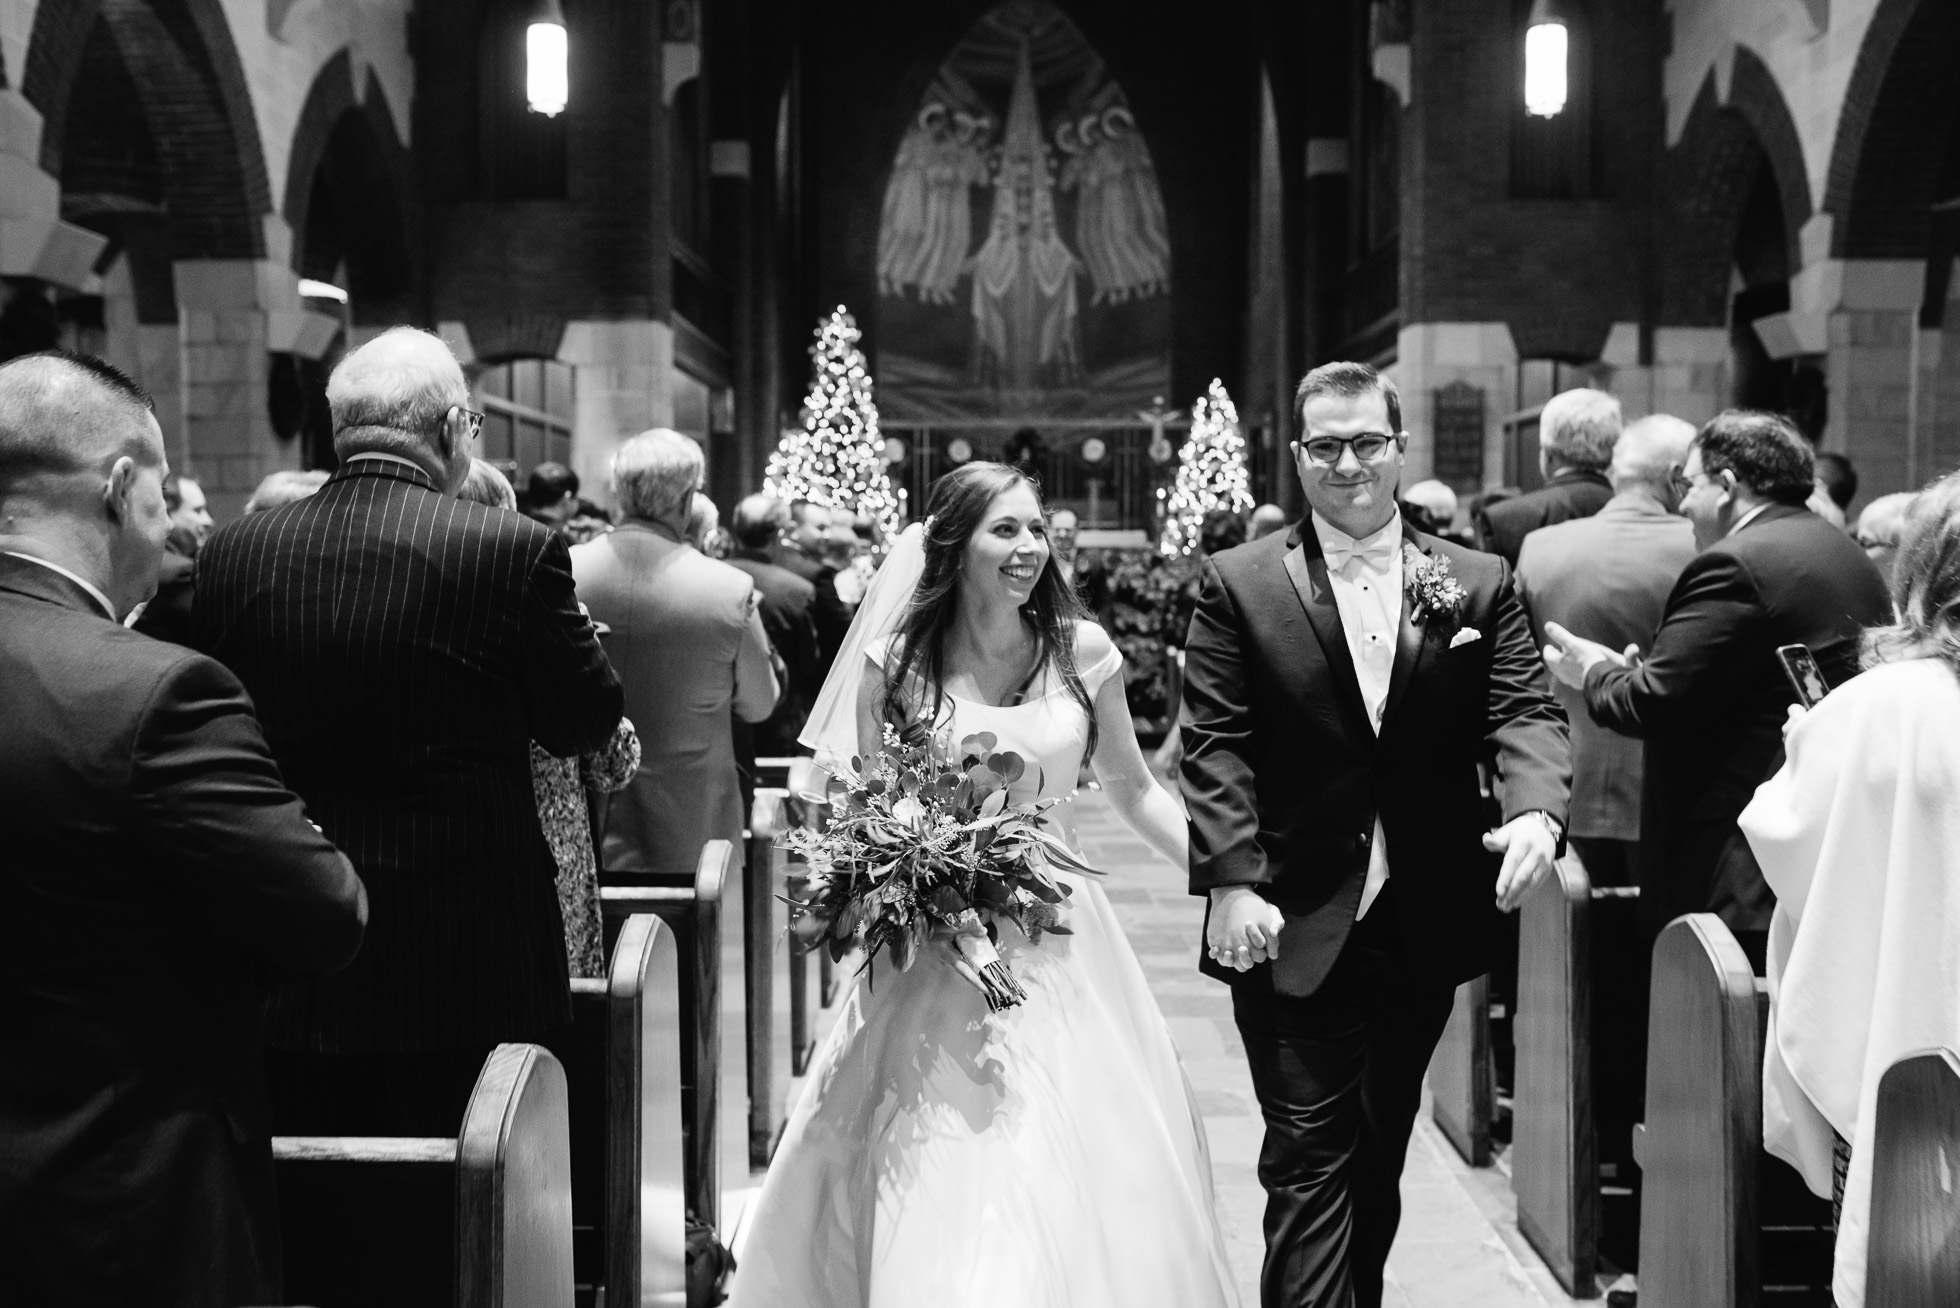 Our mother of sorrows Wedding, Johnstown Photographer, wedding photography-9901.jpg